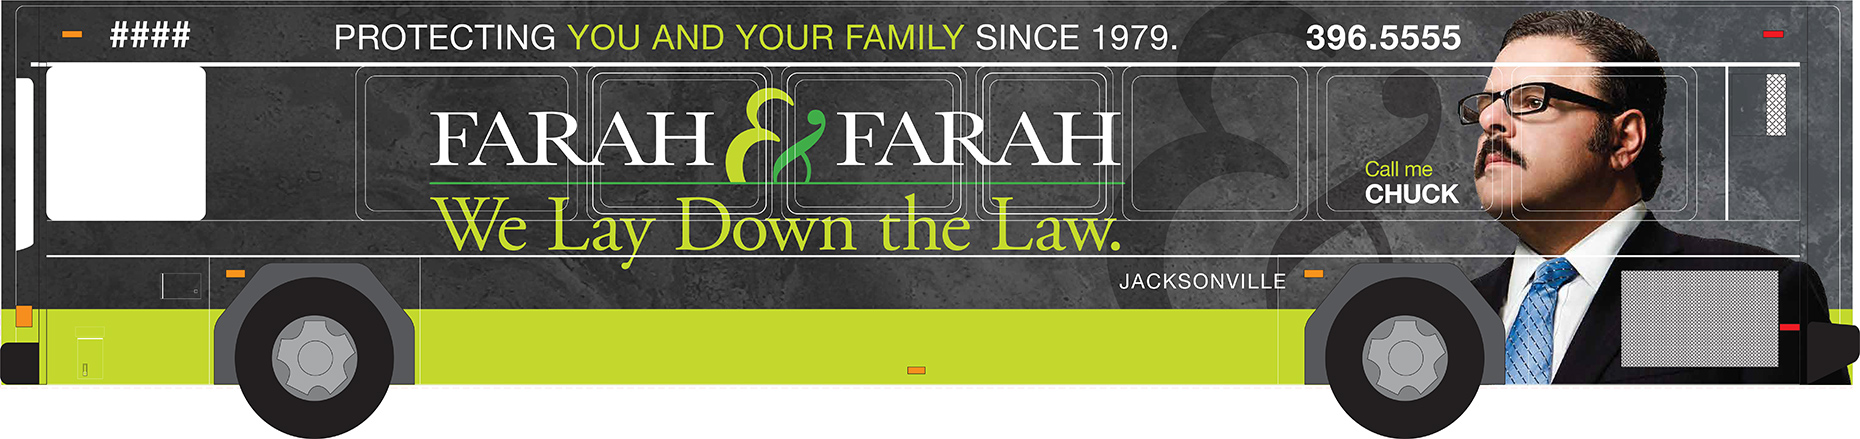 Bus wraps for law firm Farah & Farah.